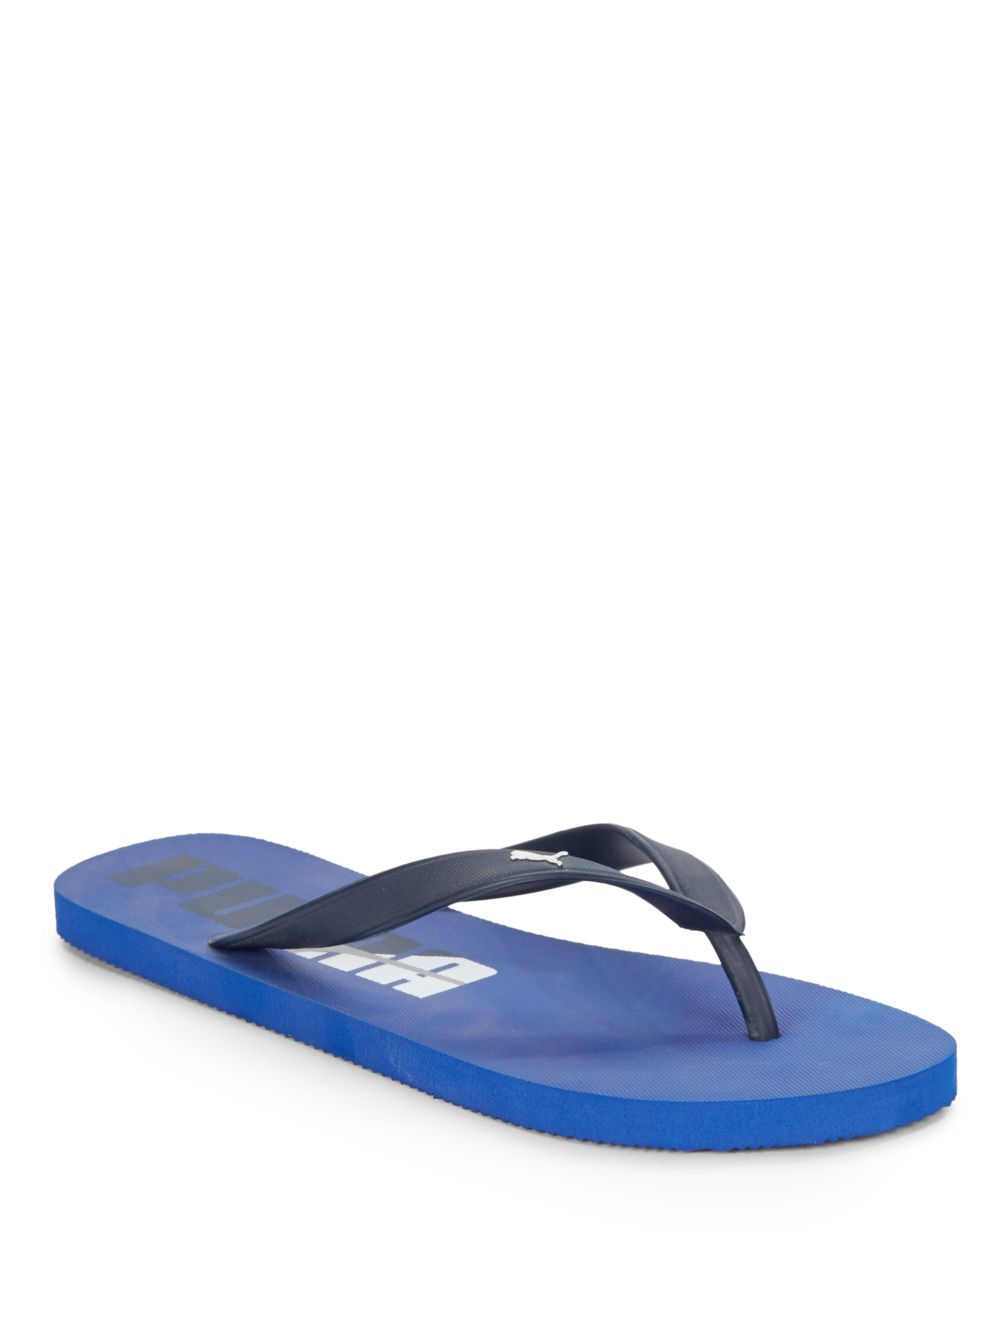 puma rubber flip flops in blue for men bright blue lyst. Black Bedroom Furniture Sets. Home Design Ideas